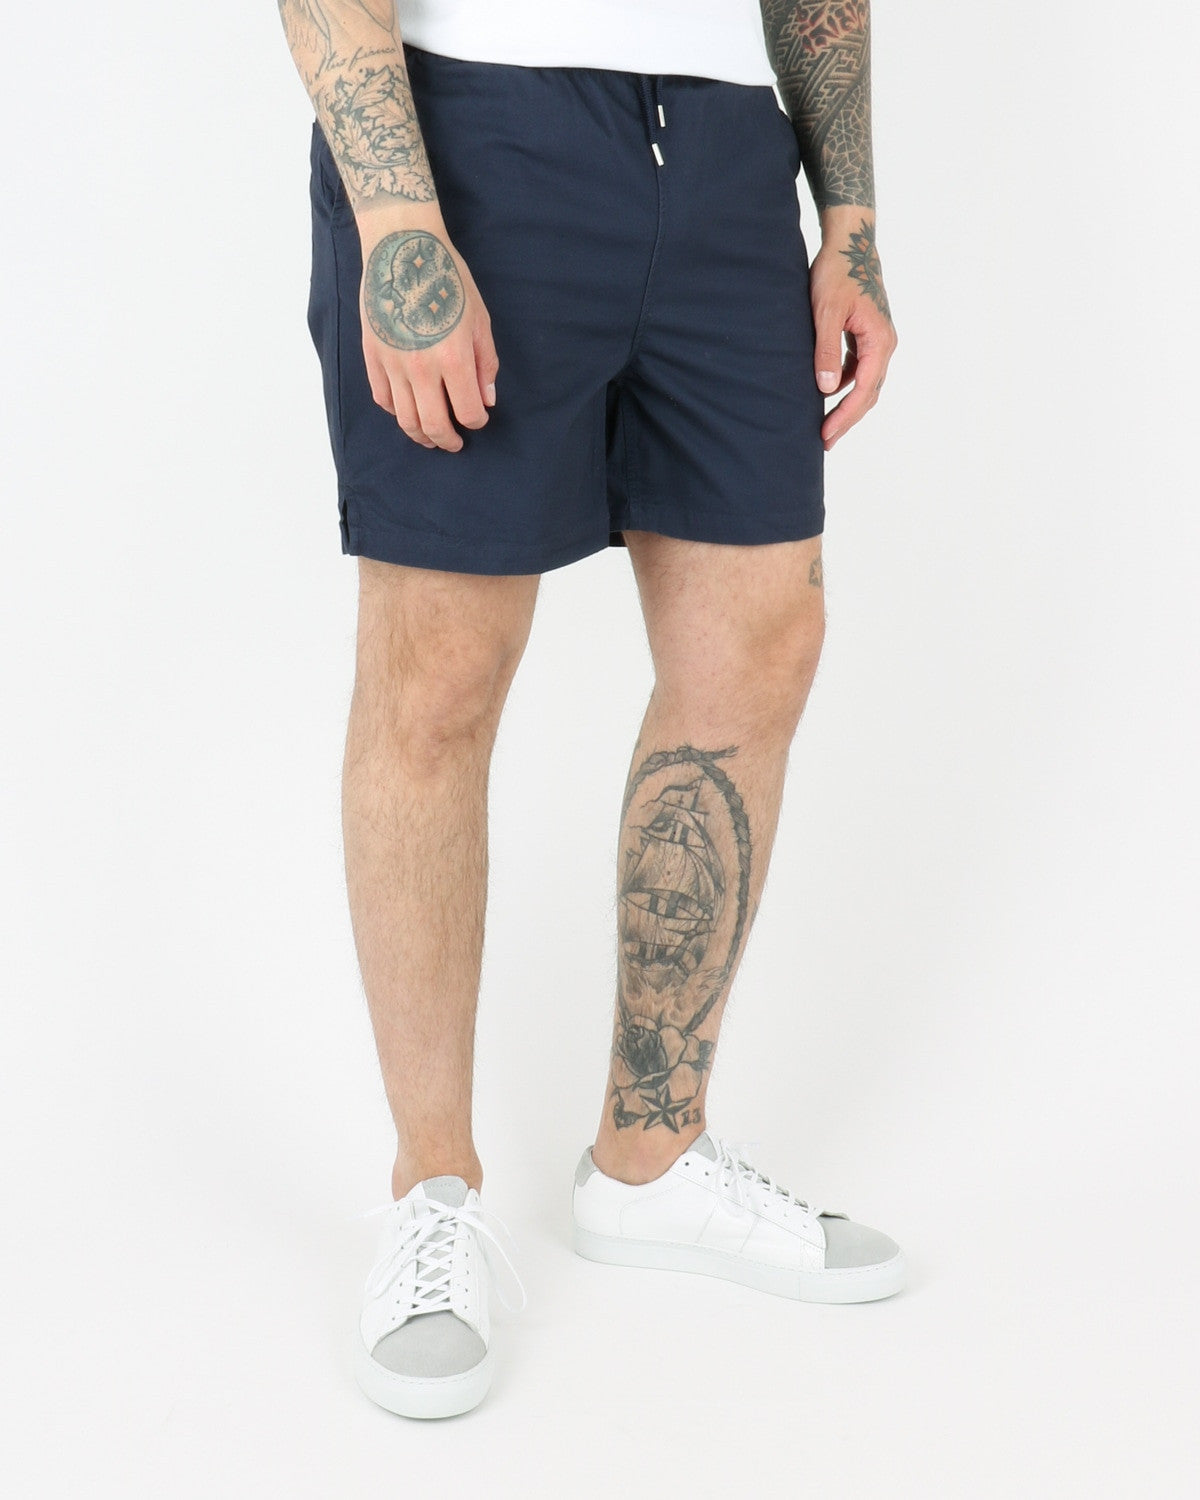 wac we are copenhagen_rivaldo shorts_navy_view_2_2